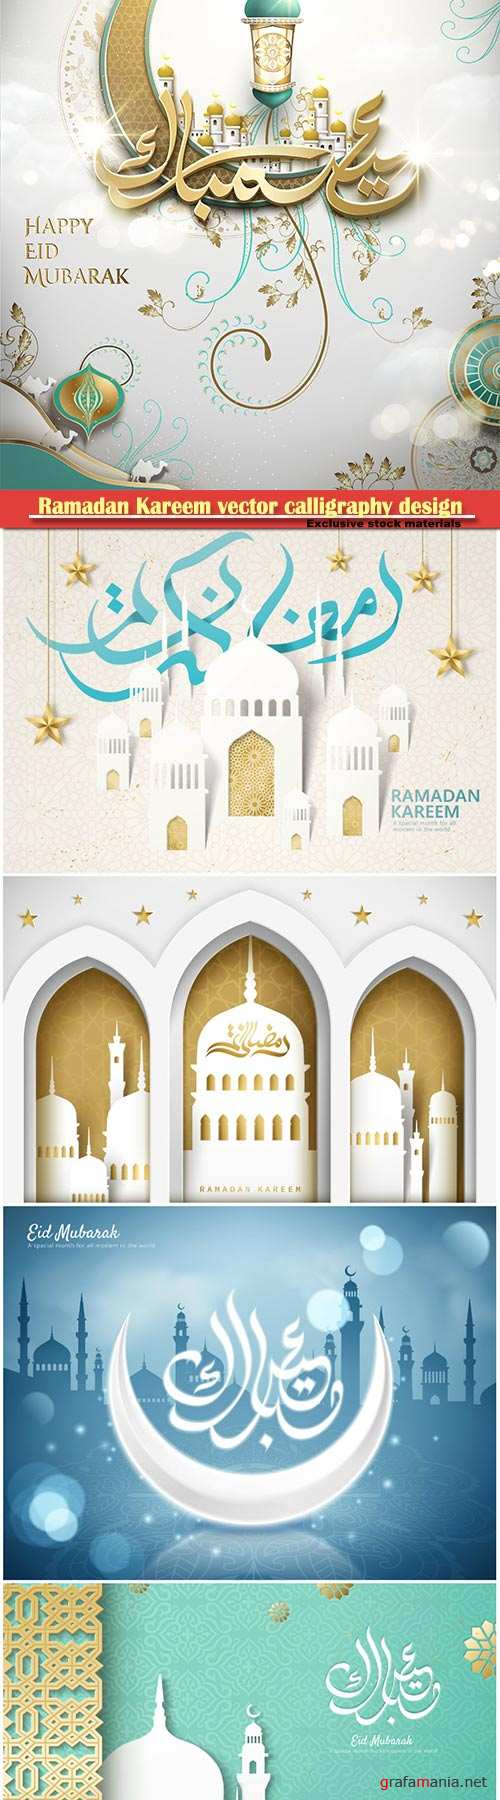 Ramadan Kareem vector calligraphy design with decorative floral pattern,mosque silhouette, crescent and glittering islamic background # 13